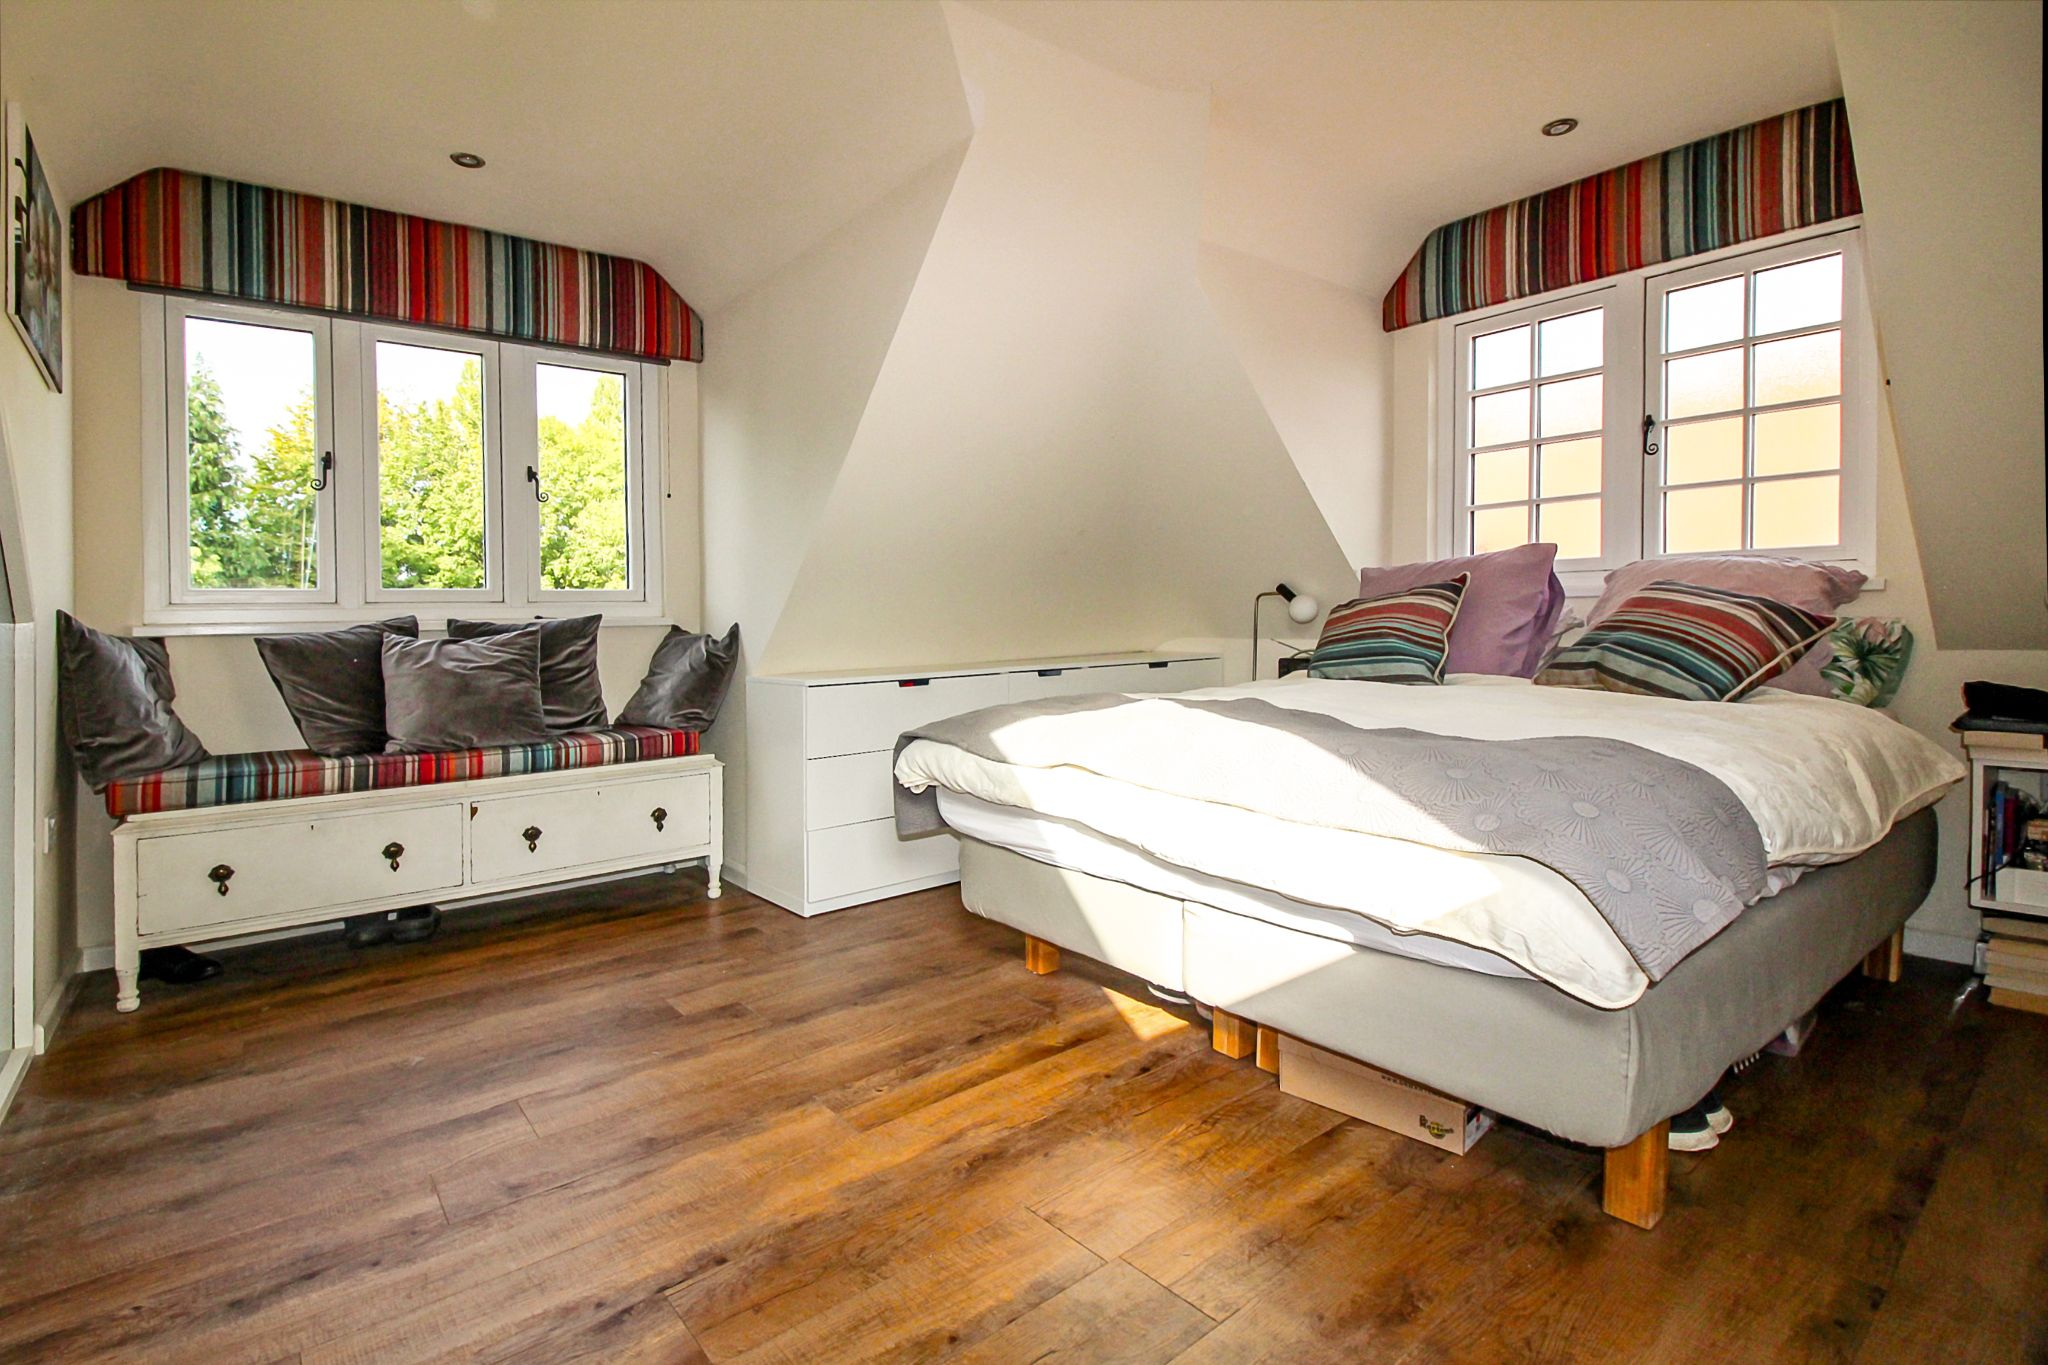 5 bedroom detached house For Sale in Solihull - Photograph 17.